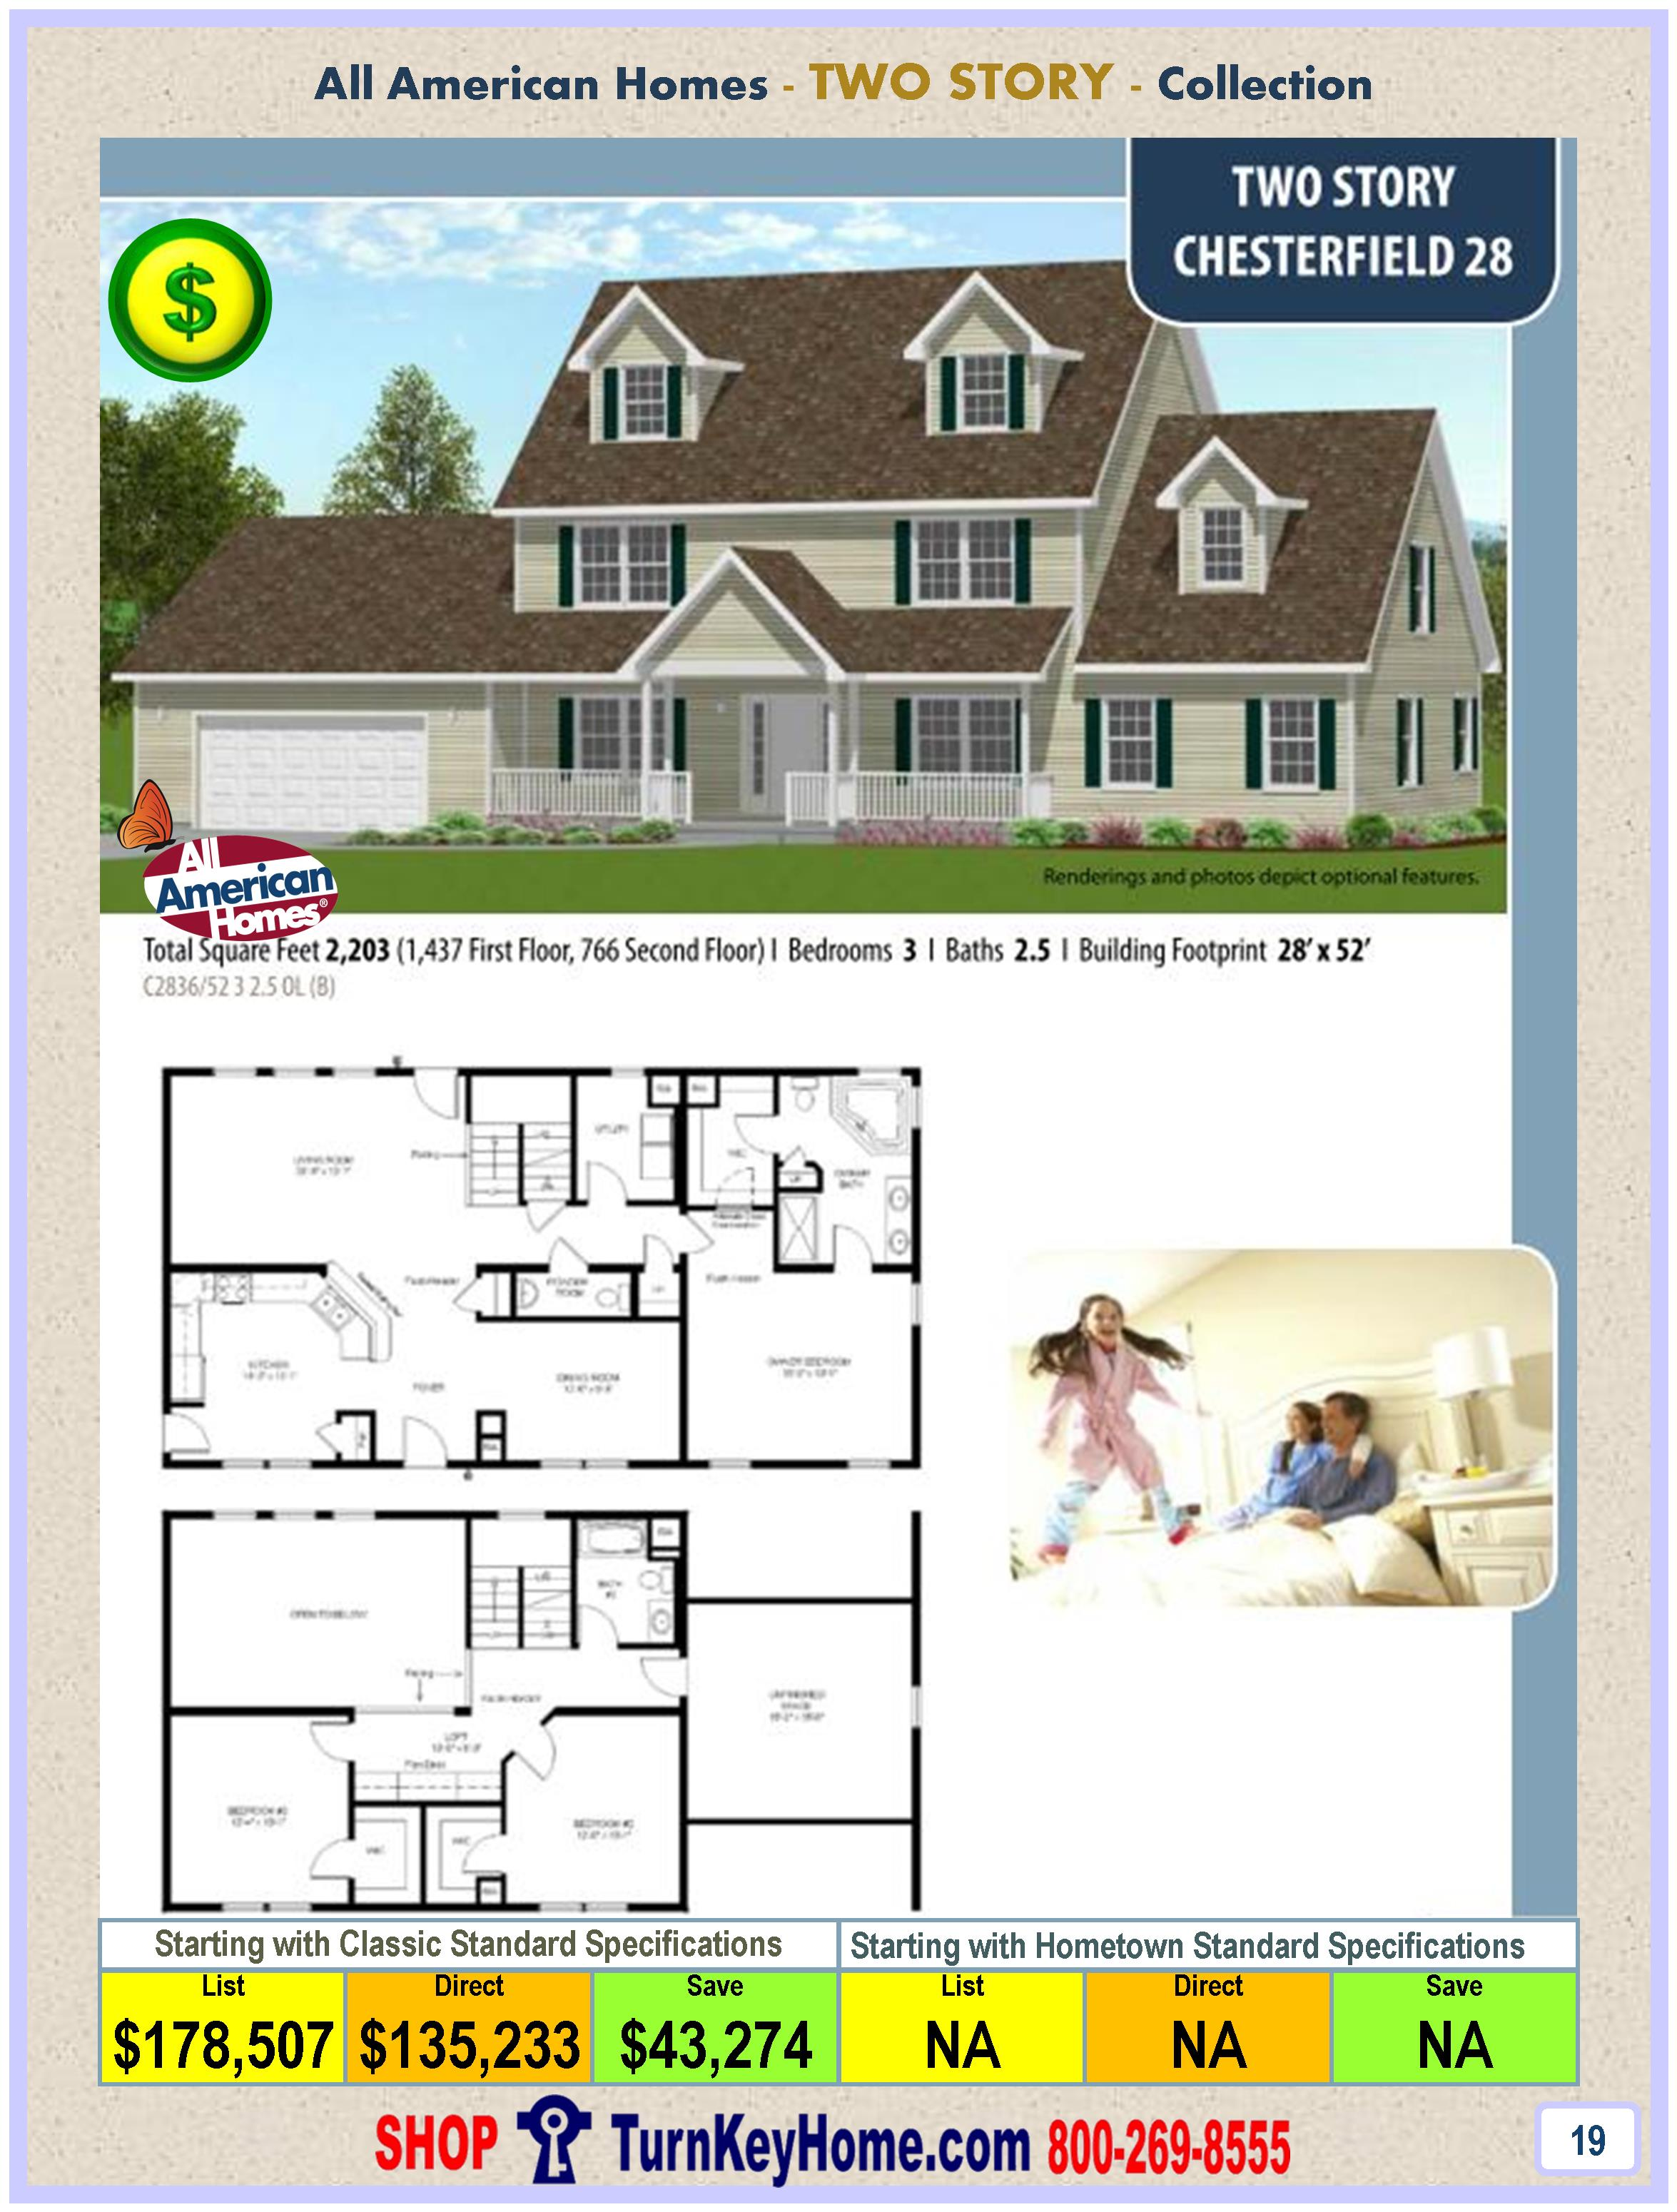 Modular.Home.All.American.Homes.Two.Story.CHESTERFIELD.28.Plan.Price.P19.1115